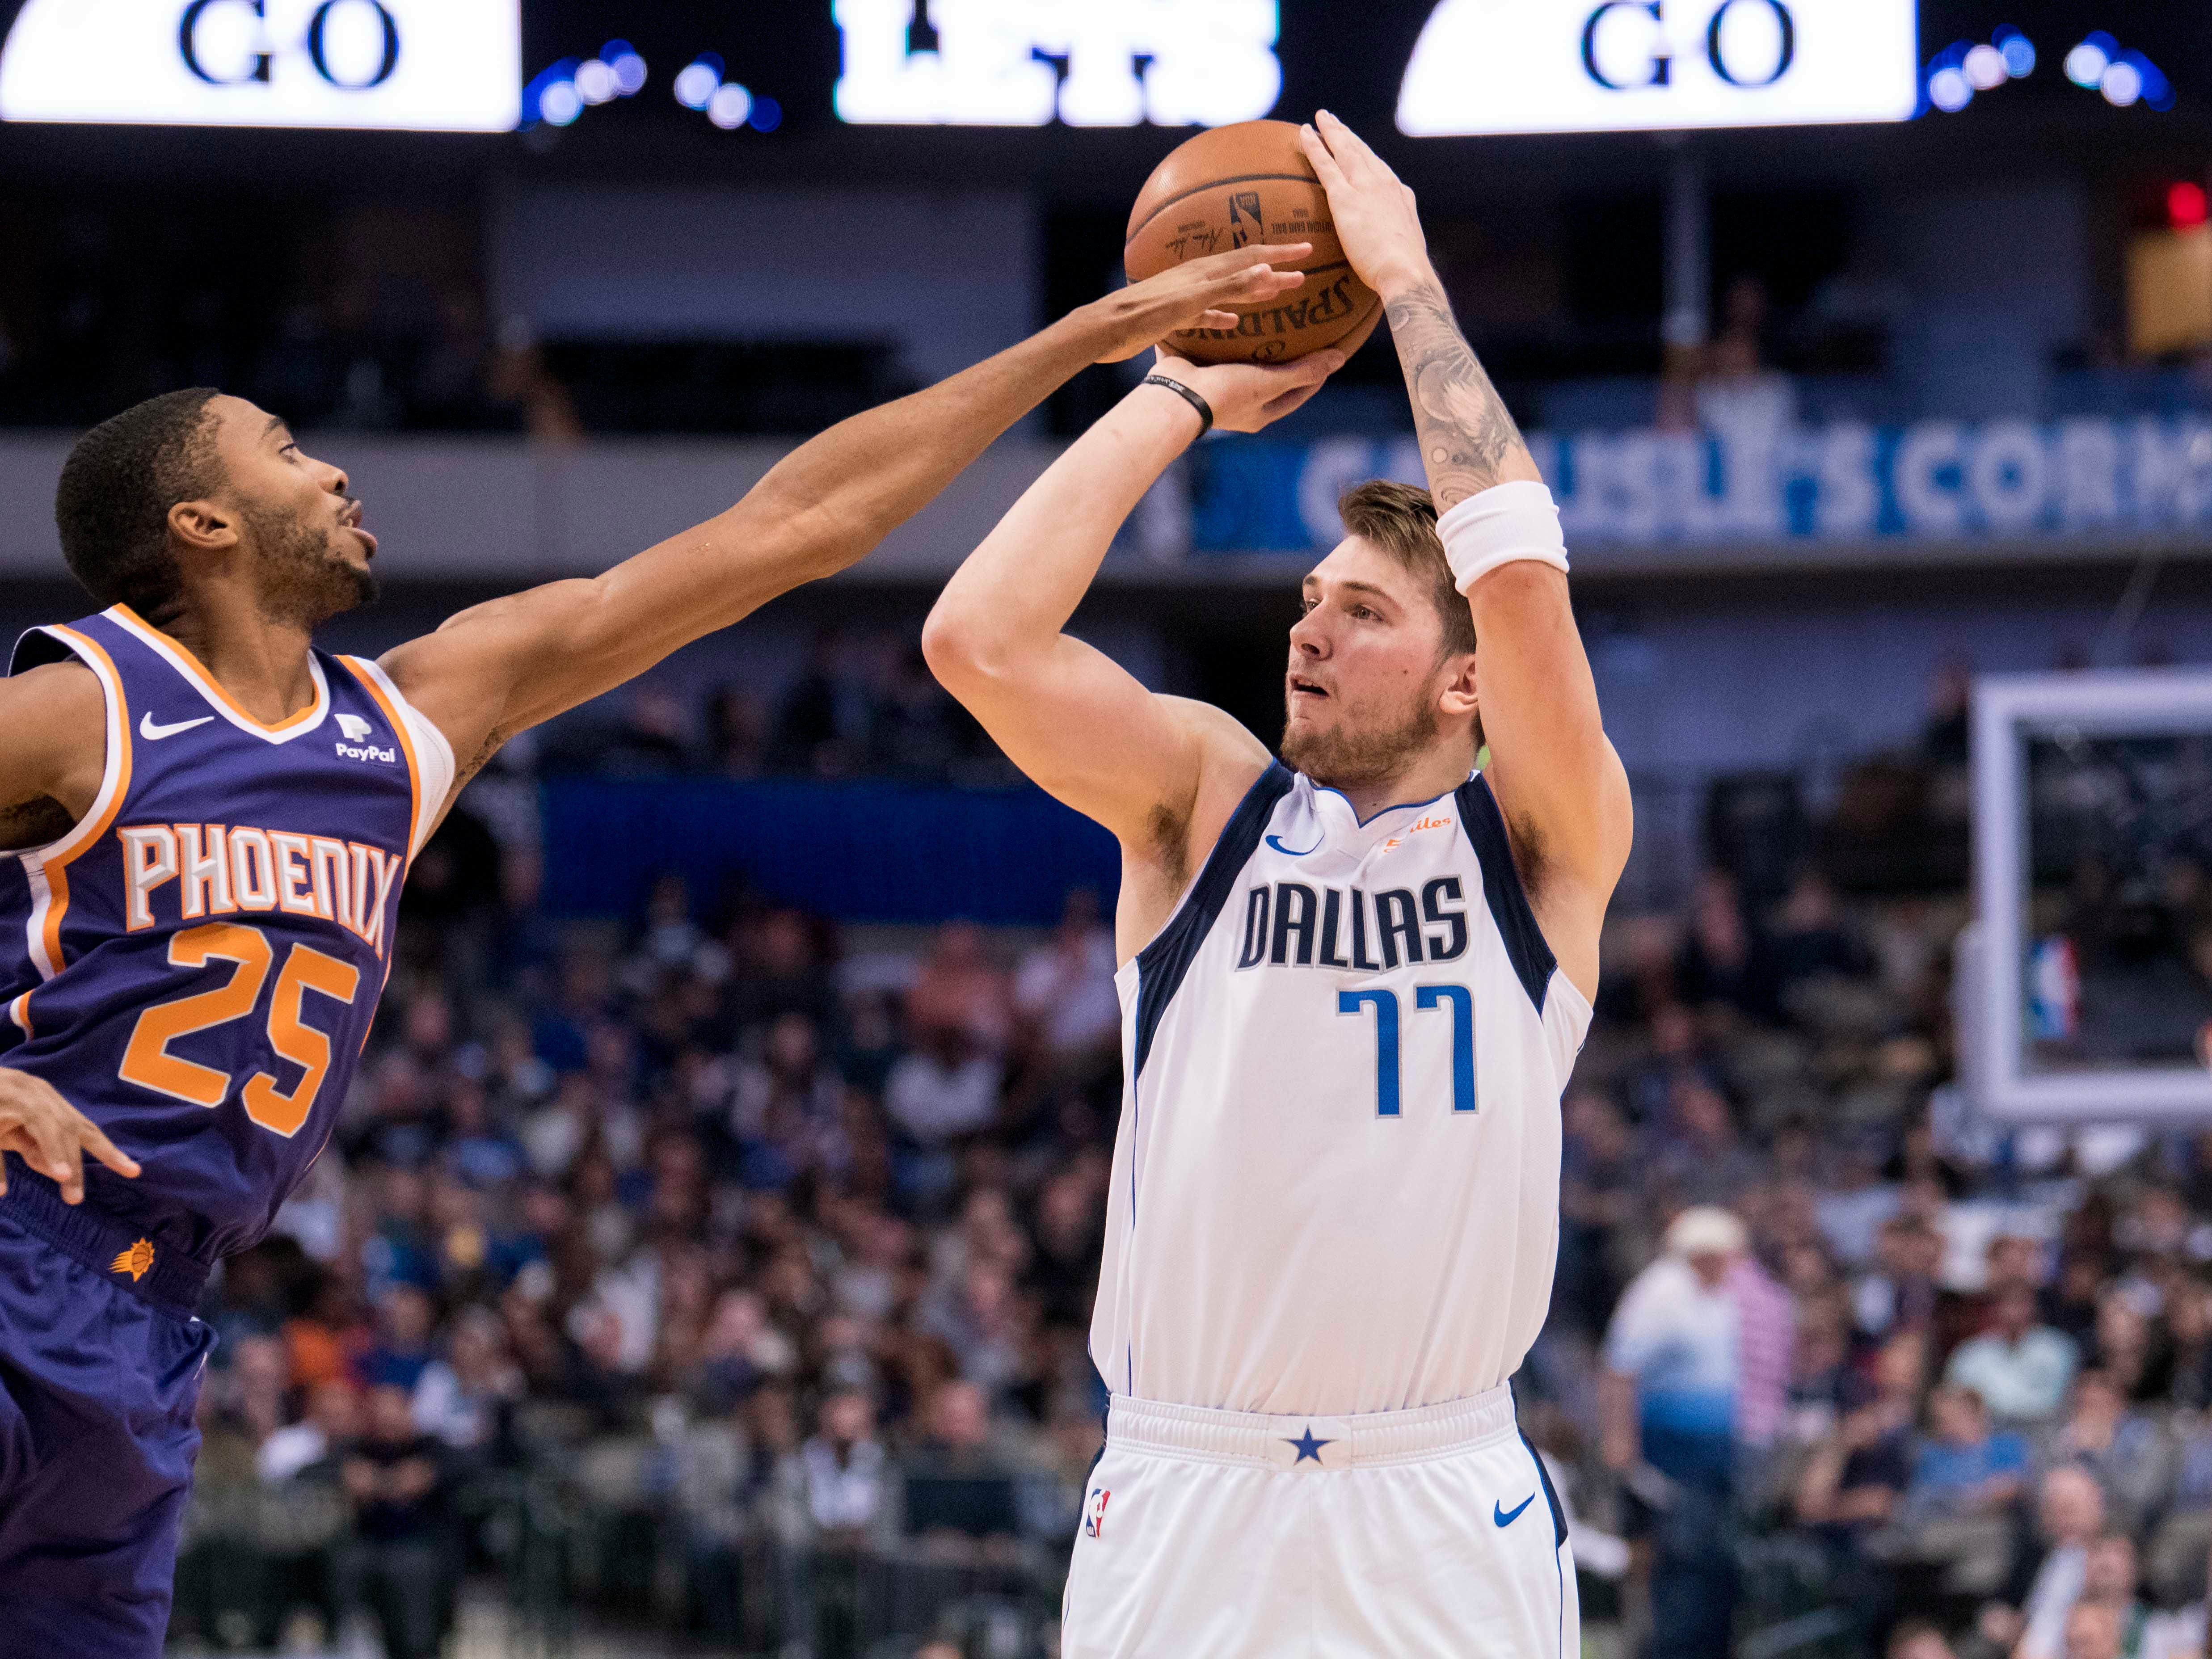 Jan 9, 2019; Dallas, TX, USA; Dallas Mavericks forward Luka Doncic (77) is fouled by Phoenix Suns forward Mikal Bridges (25) on a three point basket during the first quarter at the American Airlines Center. Mandatory Credit: Jerome Miron-USA TODAY Sports